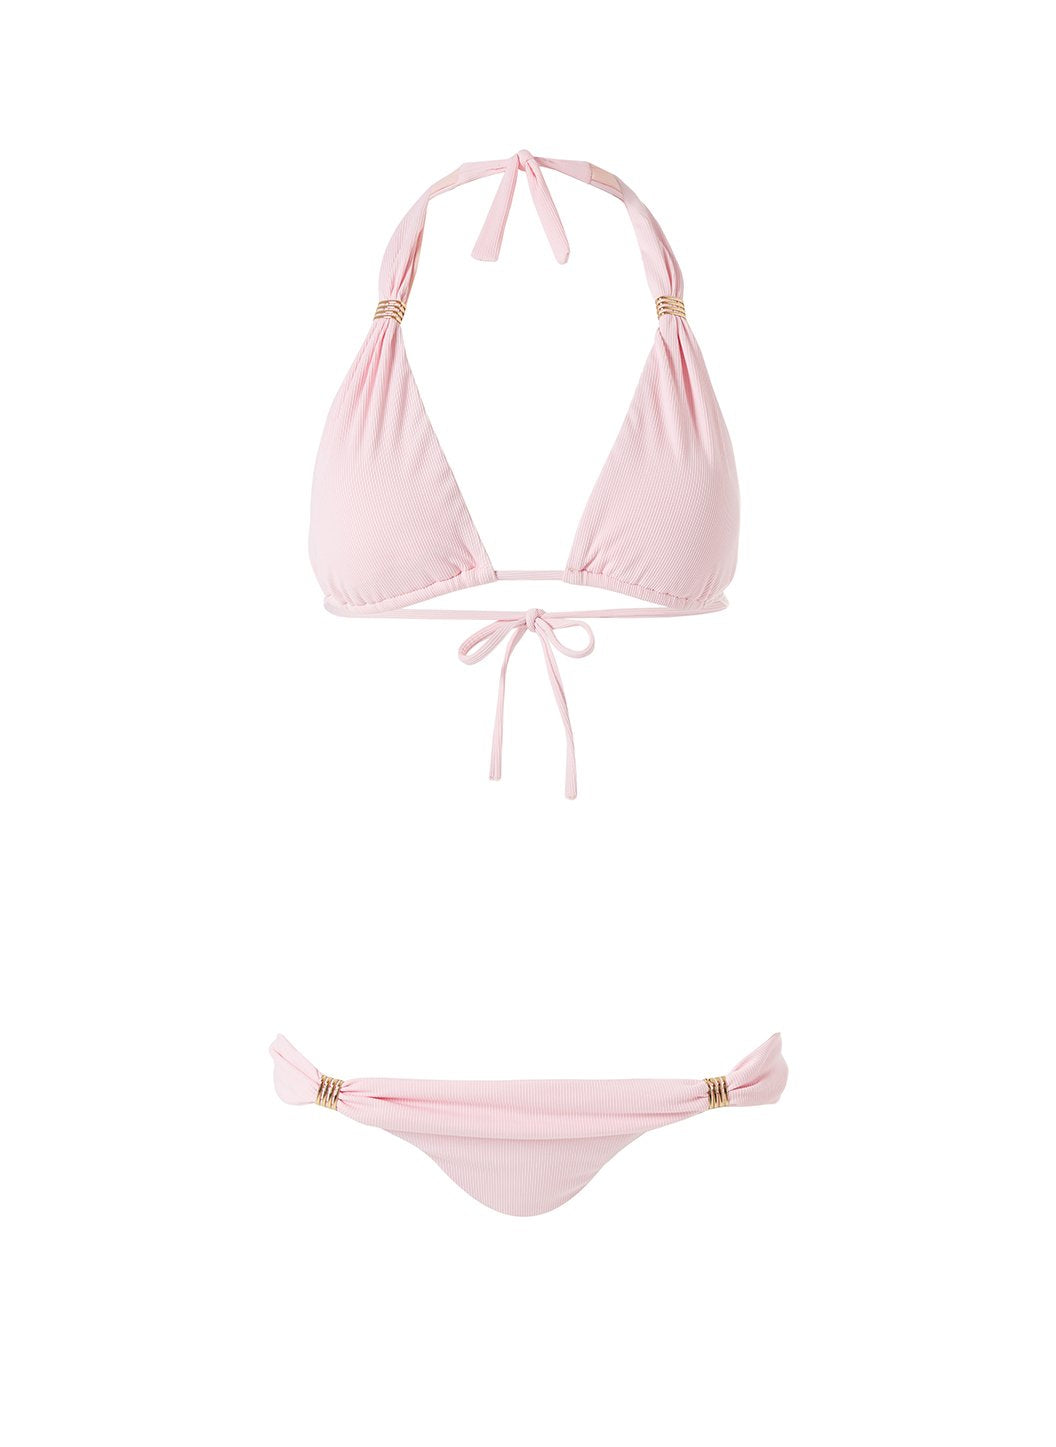 Martinique Baroque Blush Bikini Bottom CUTOUT